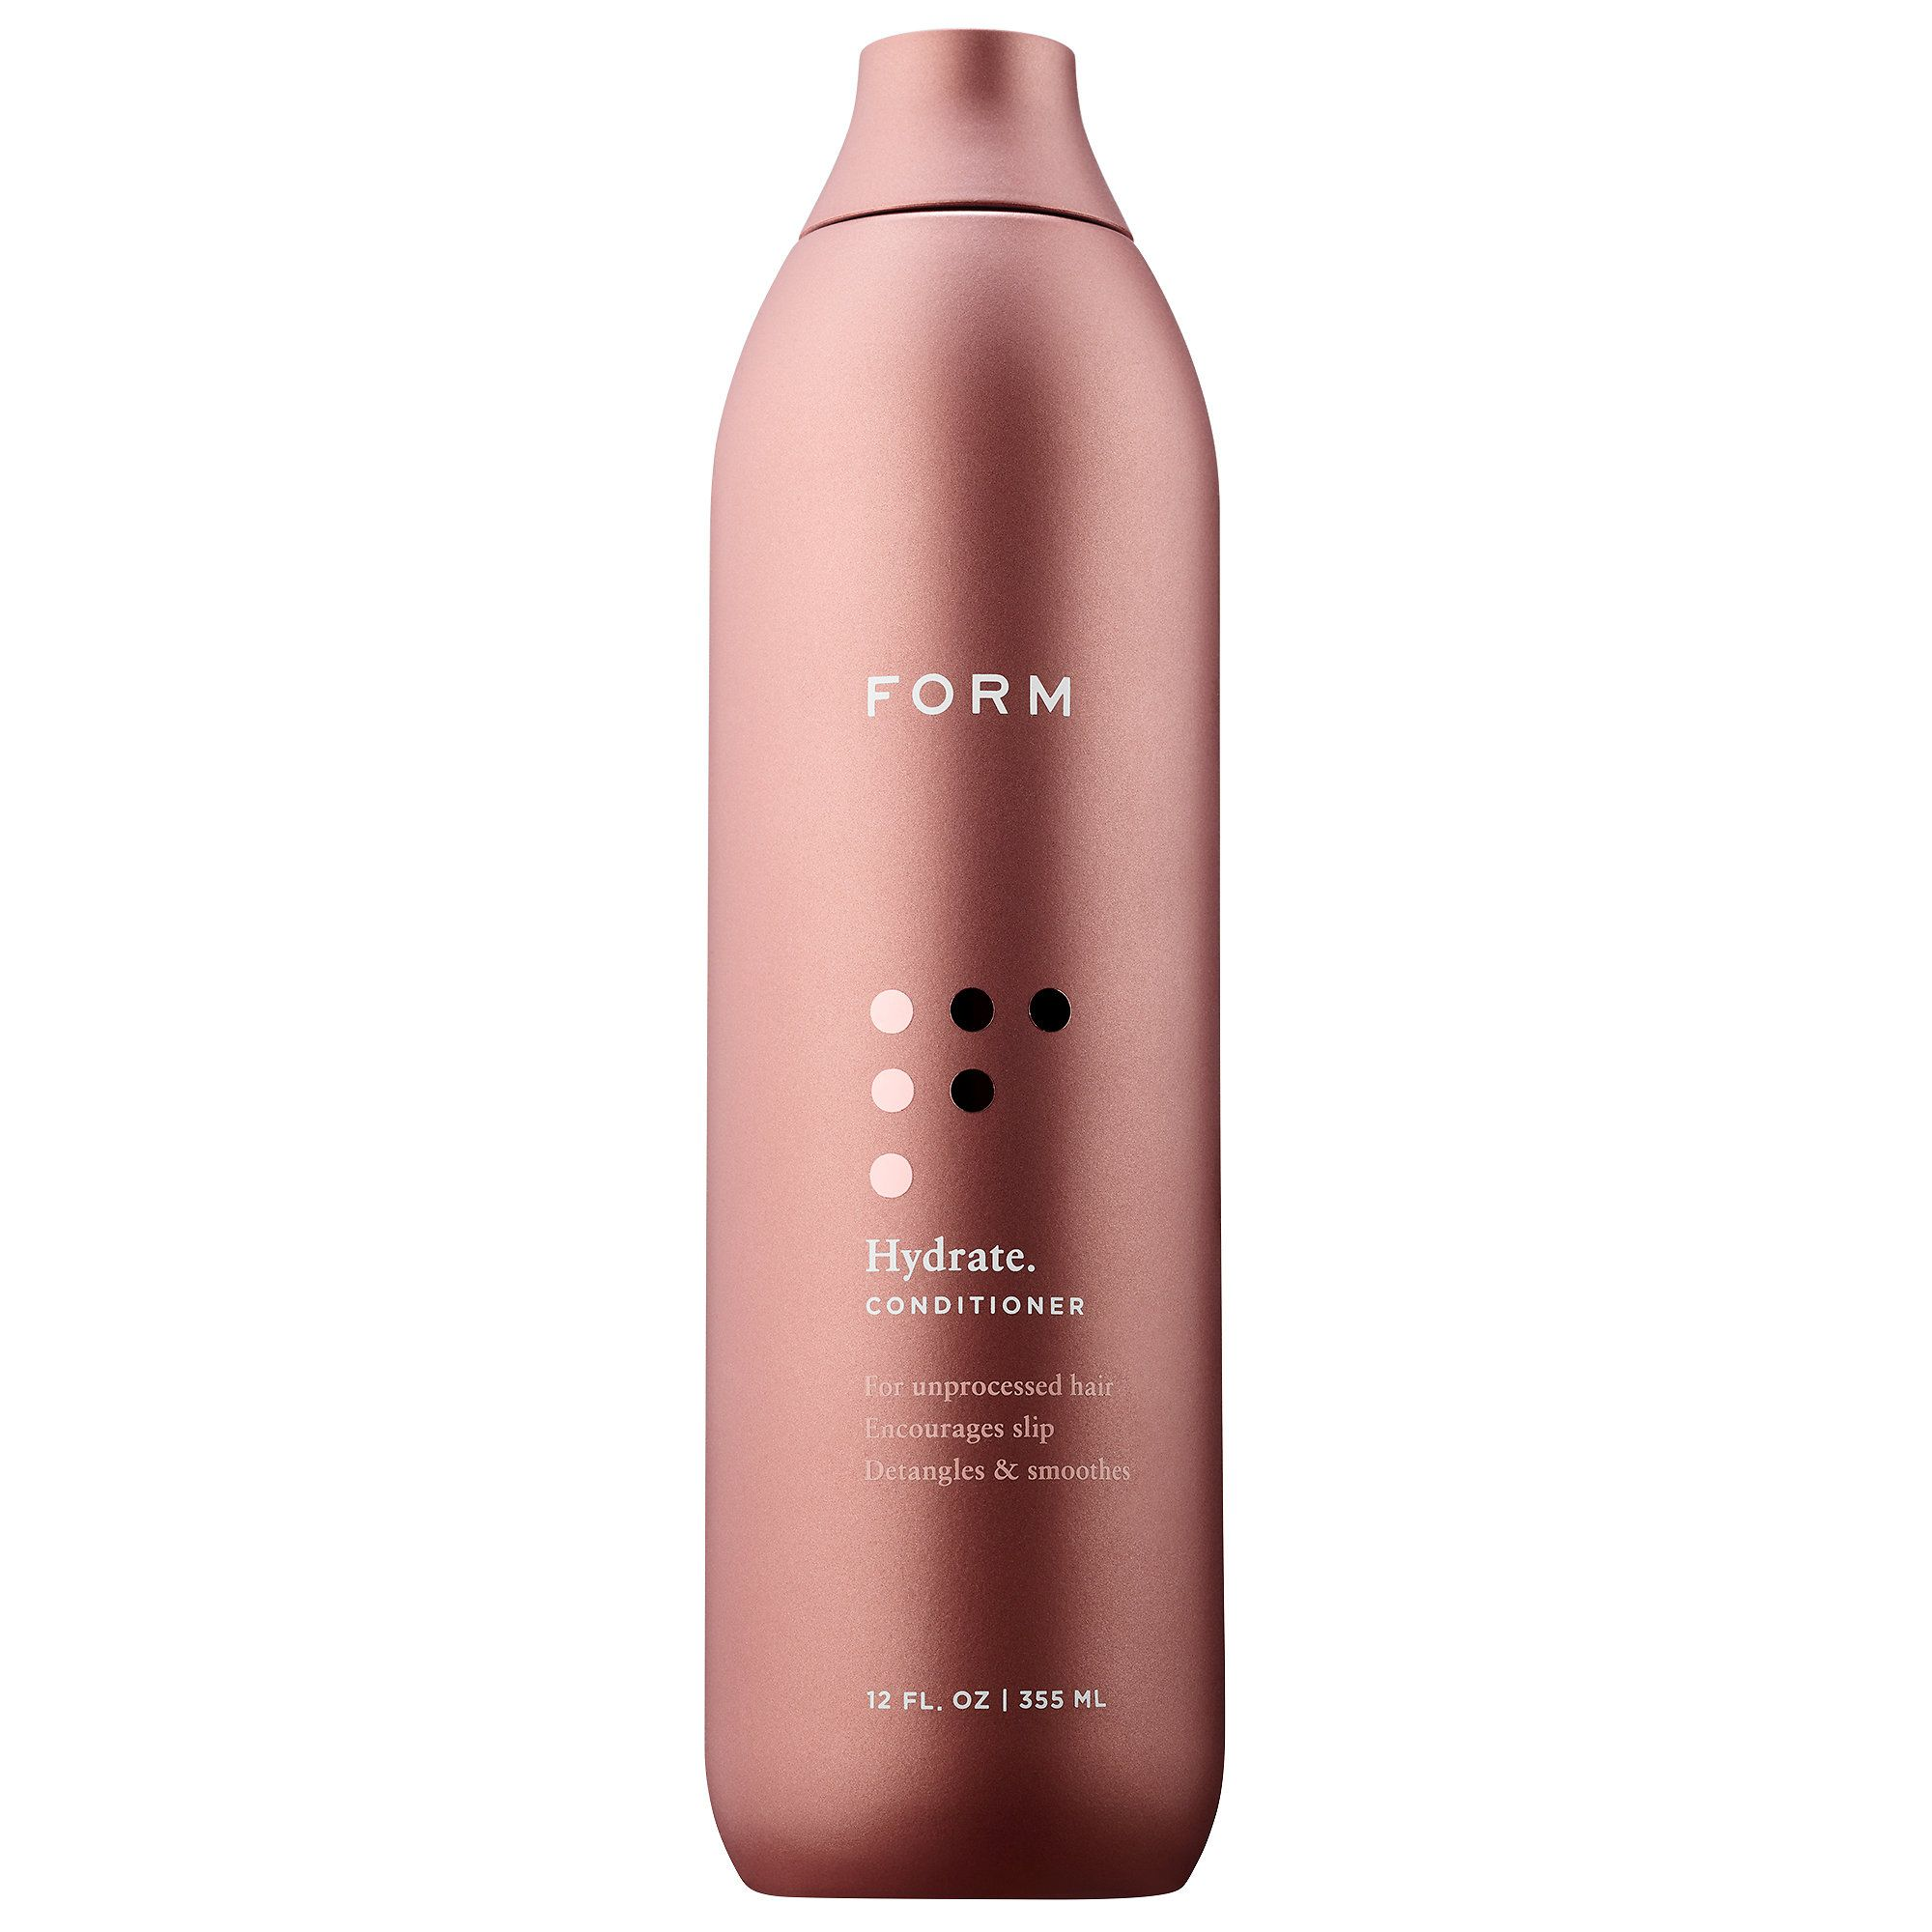 Hydrate Conditioner FORM Sephora Hair Products Pinterest